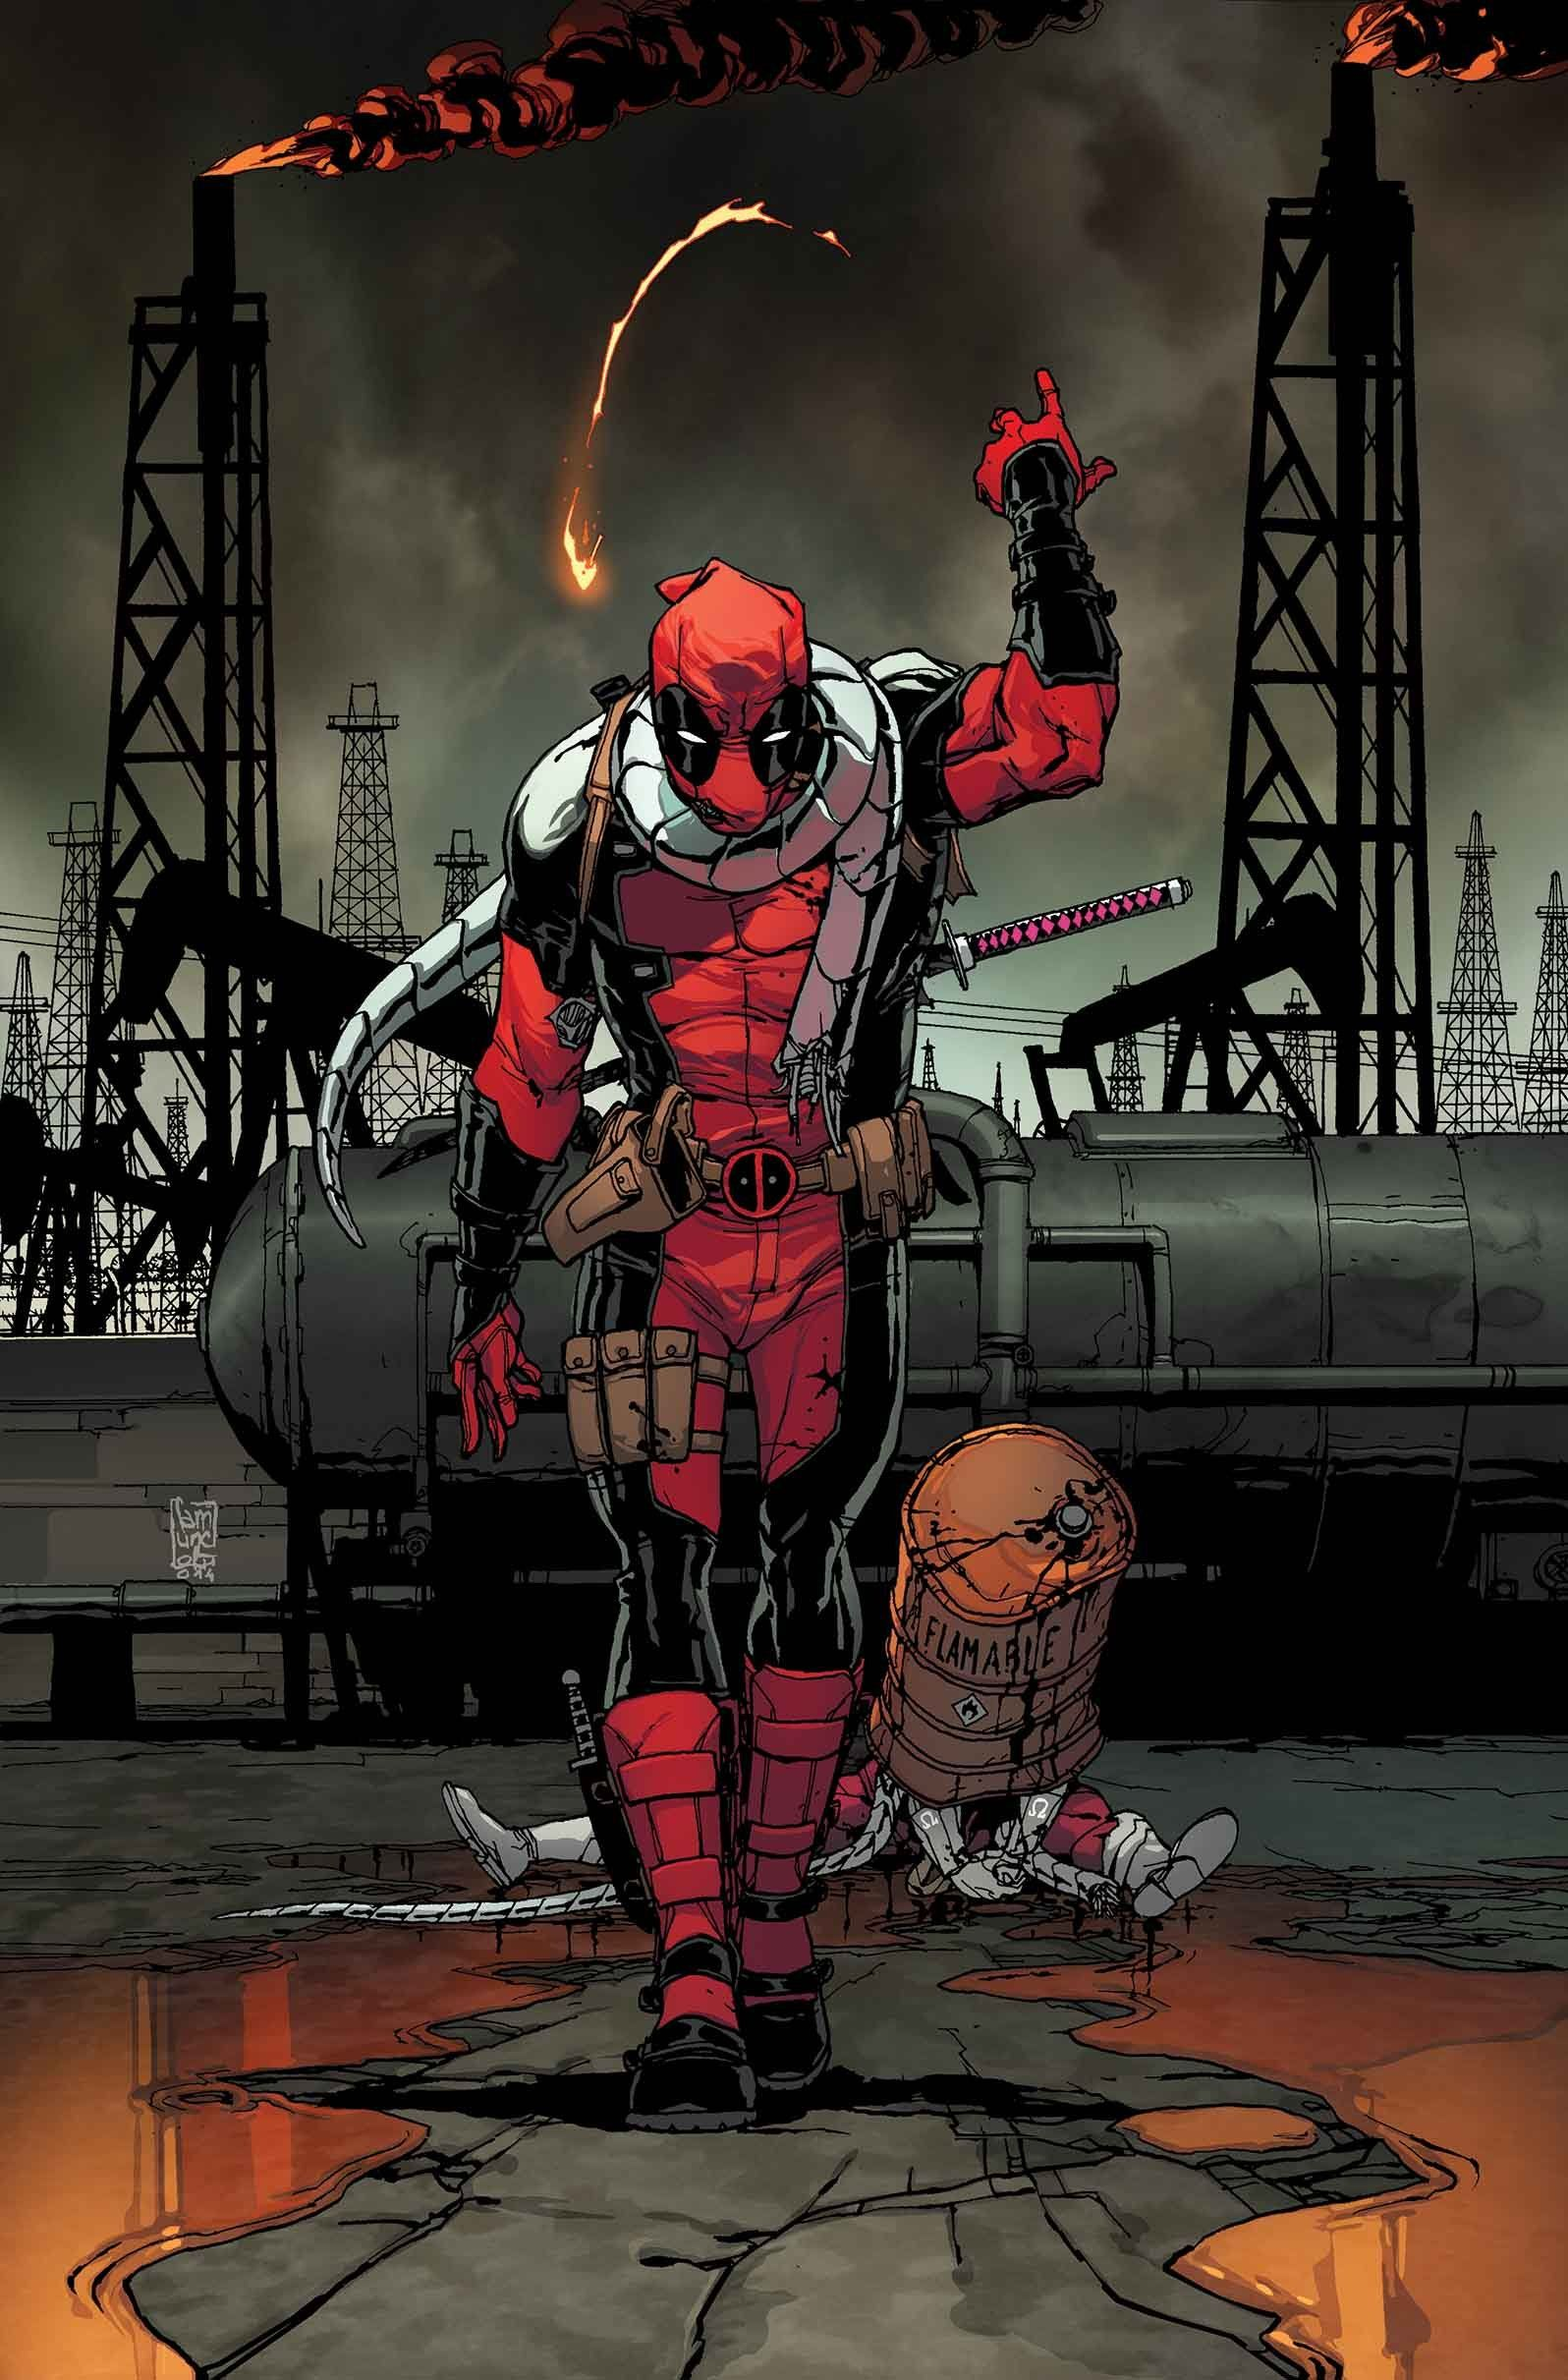 #Deadpool #Fan #Art. (Deadpool #43 Cover) By: Giuseppe Camuncoli. (THE * 5 * STÅR * ÅWARD * OF: * AW YEAH, IT'S MAJOR ÅWESOMENESS!!!™) ÅÅÅ+